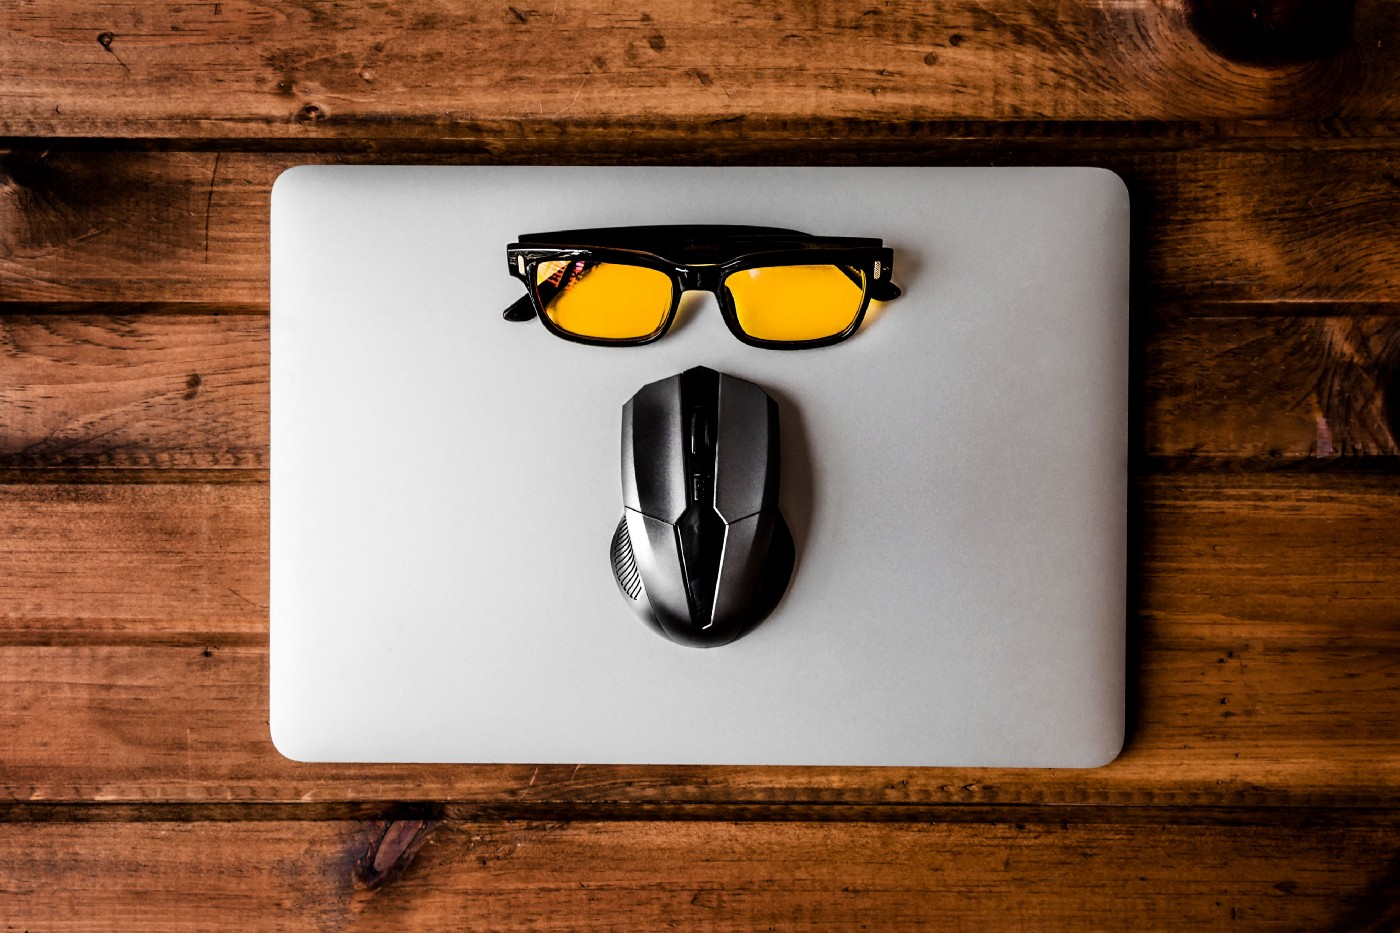 Sunglasses on a laptop